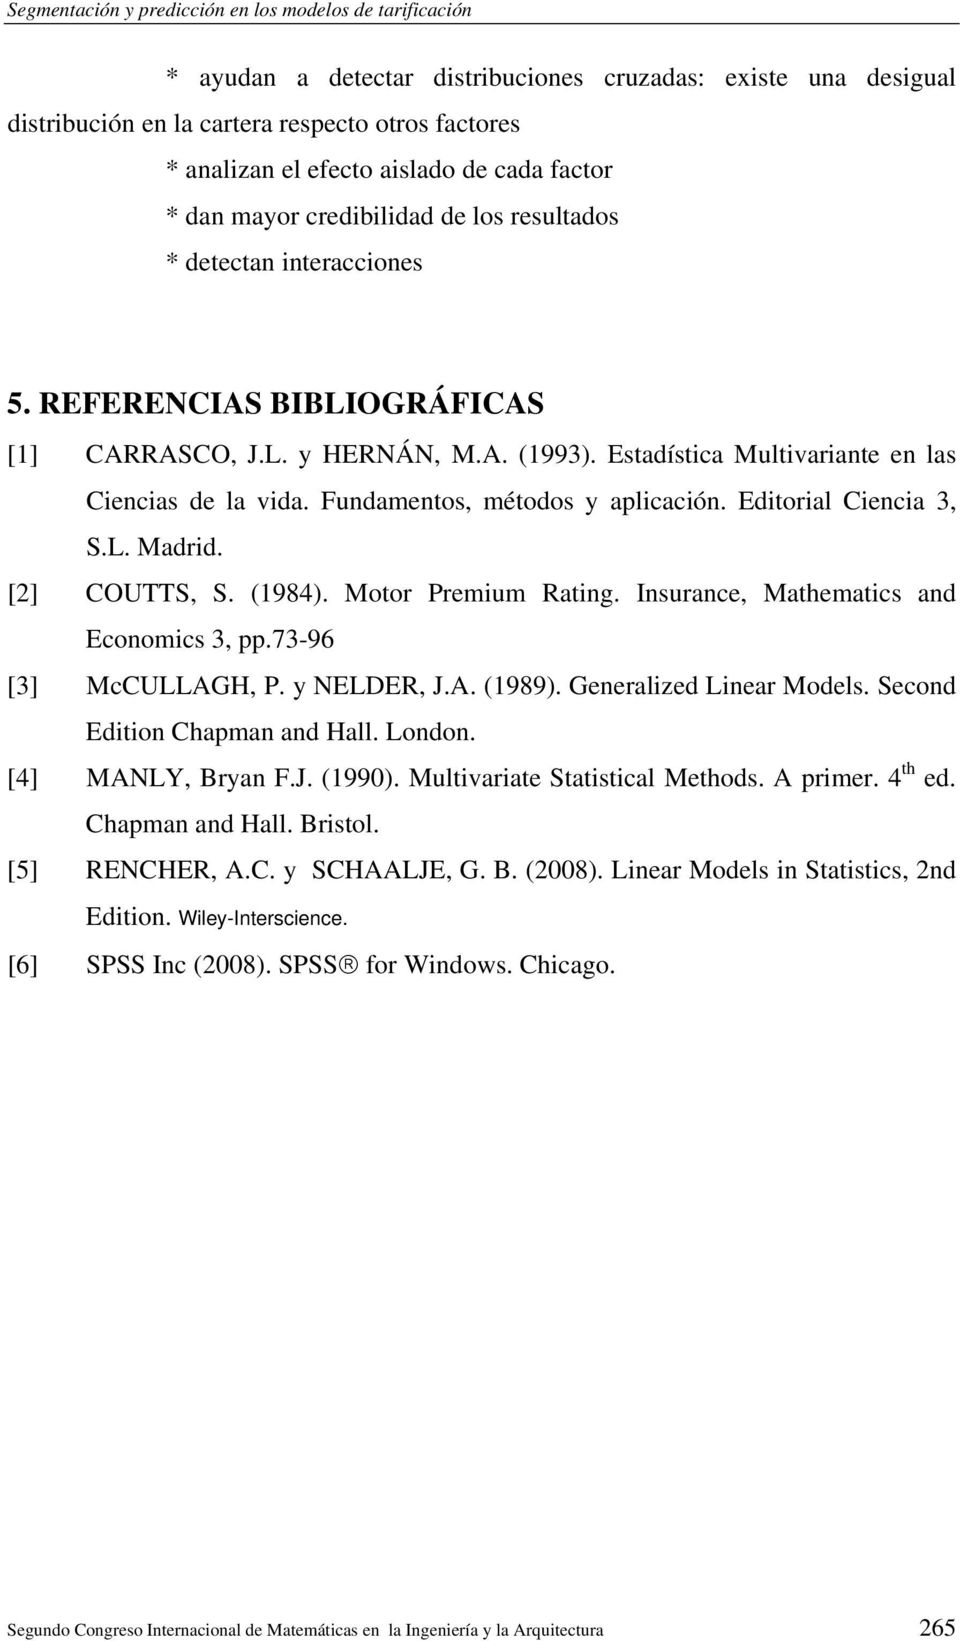 Editorial Ciencia 3, S.L. Madrid. [2] COUTTS, S. (1984). Motor Premium Rating. Insurance, Mathematics and Economics 3, pp.73-96 [3] McCULLAGH, P. y NELDER, J.A. (1989). Generalized Linear Models.